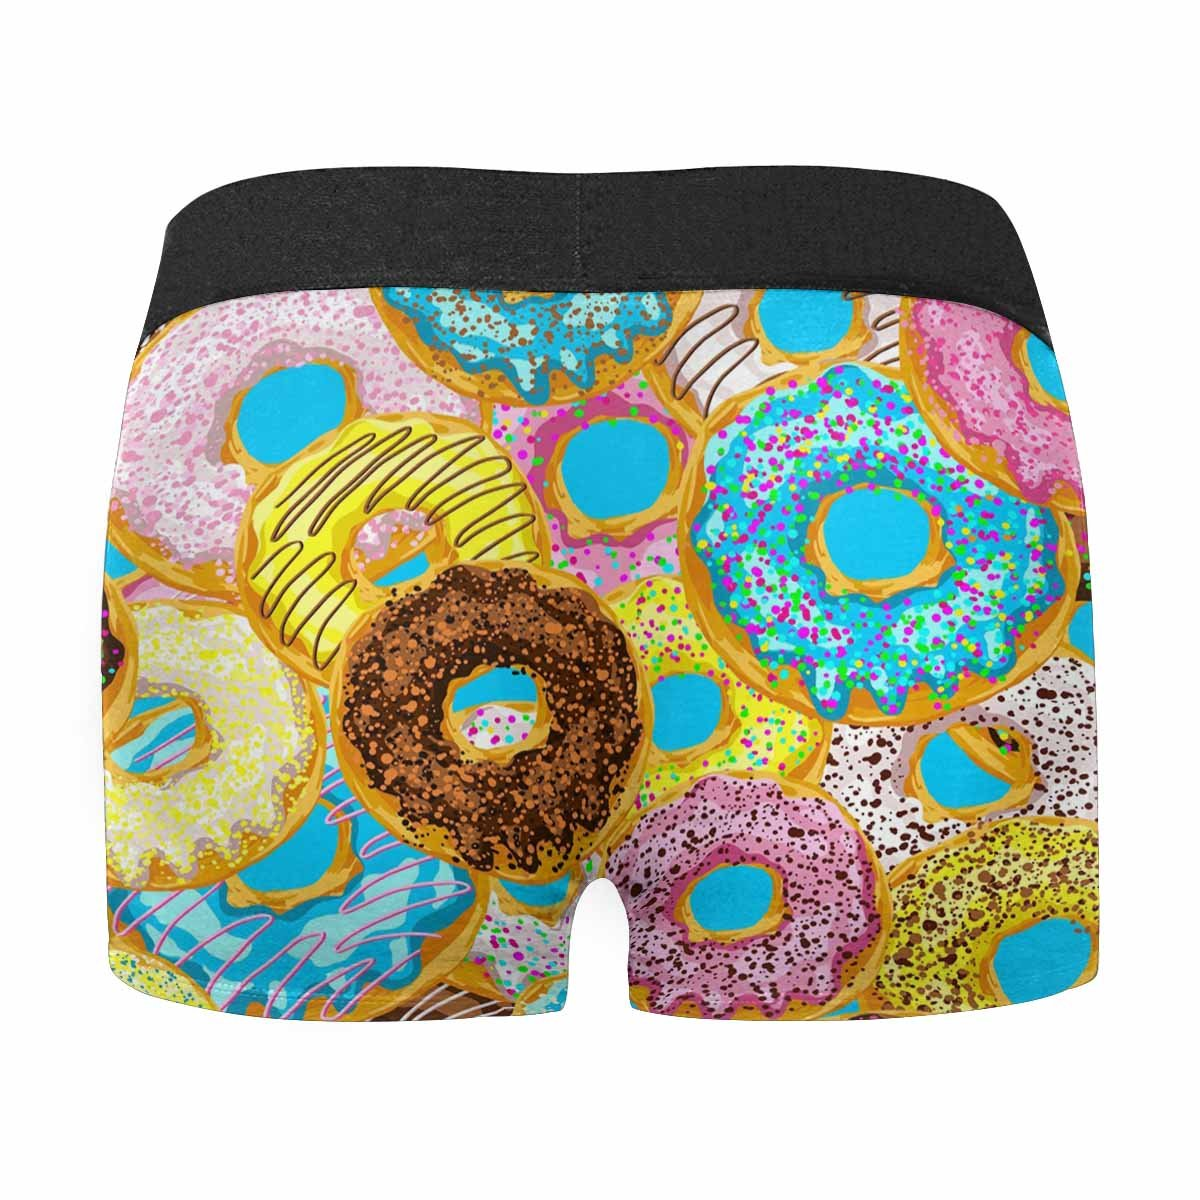 INTERESTPRINT Mens Boxer Briefs Colorful Donuts with Glaze and Sprinkles XS-3XL